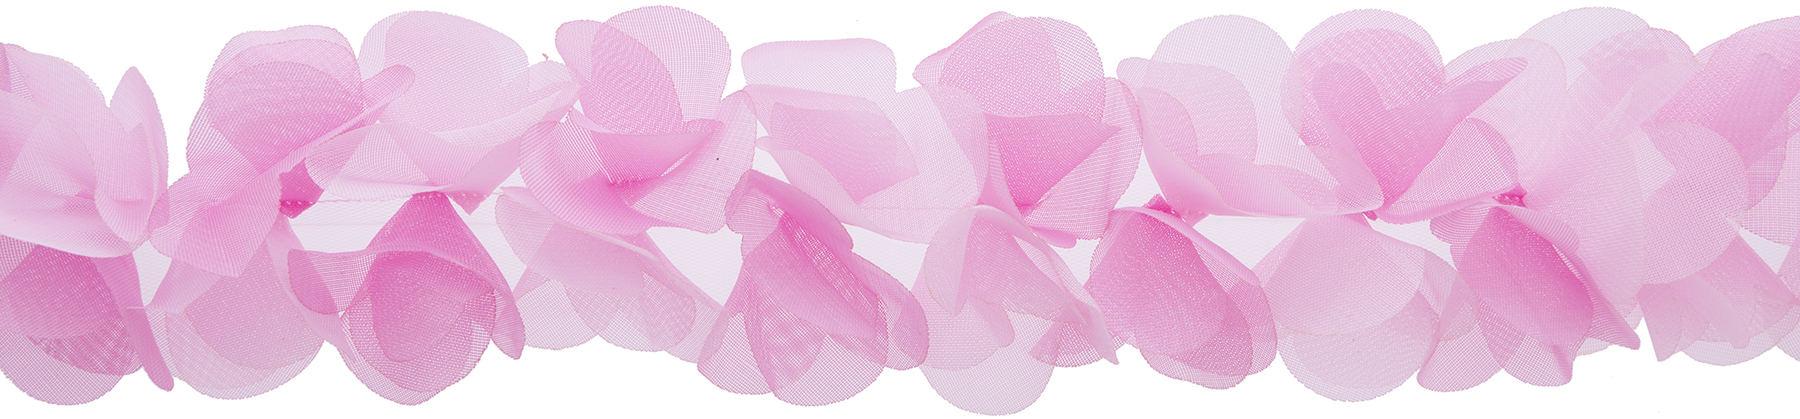 Wrights® Petals Folded Flowers Trim 2.25\u0027\u0027x10 yds-Ombre Pink